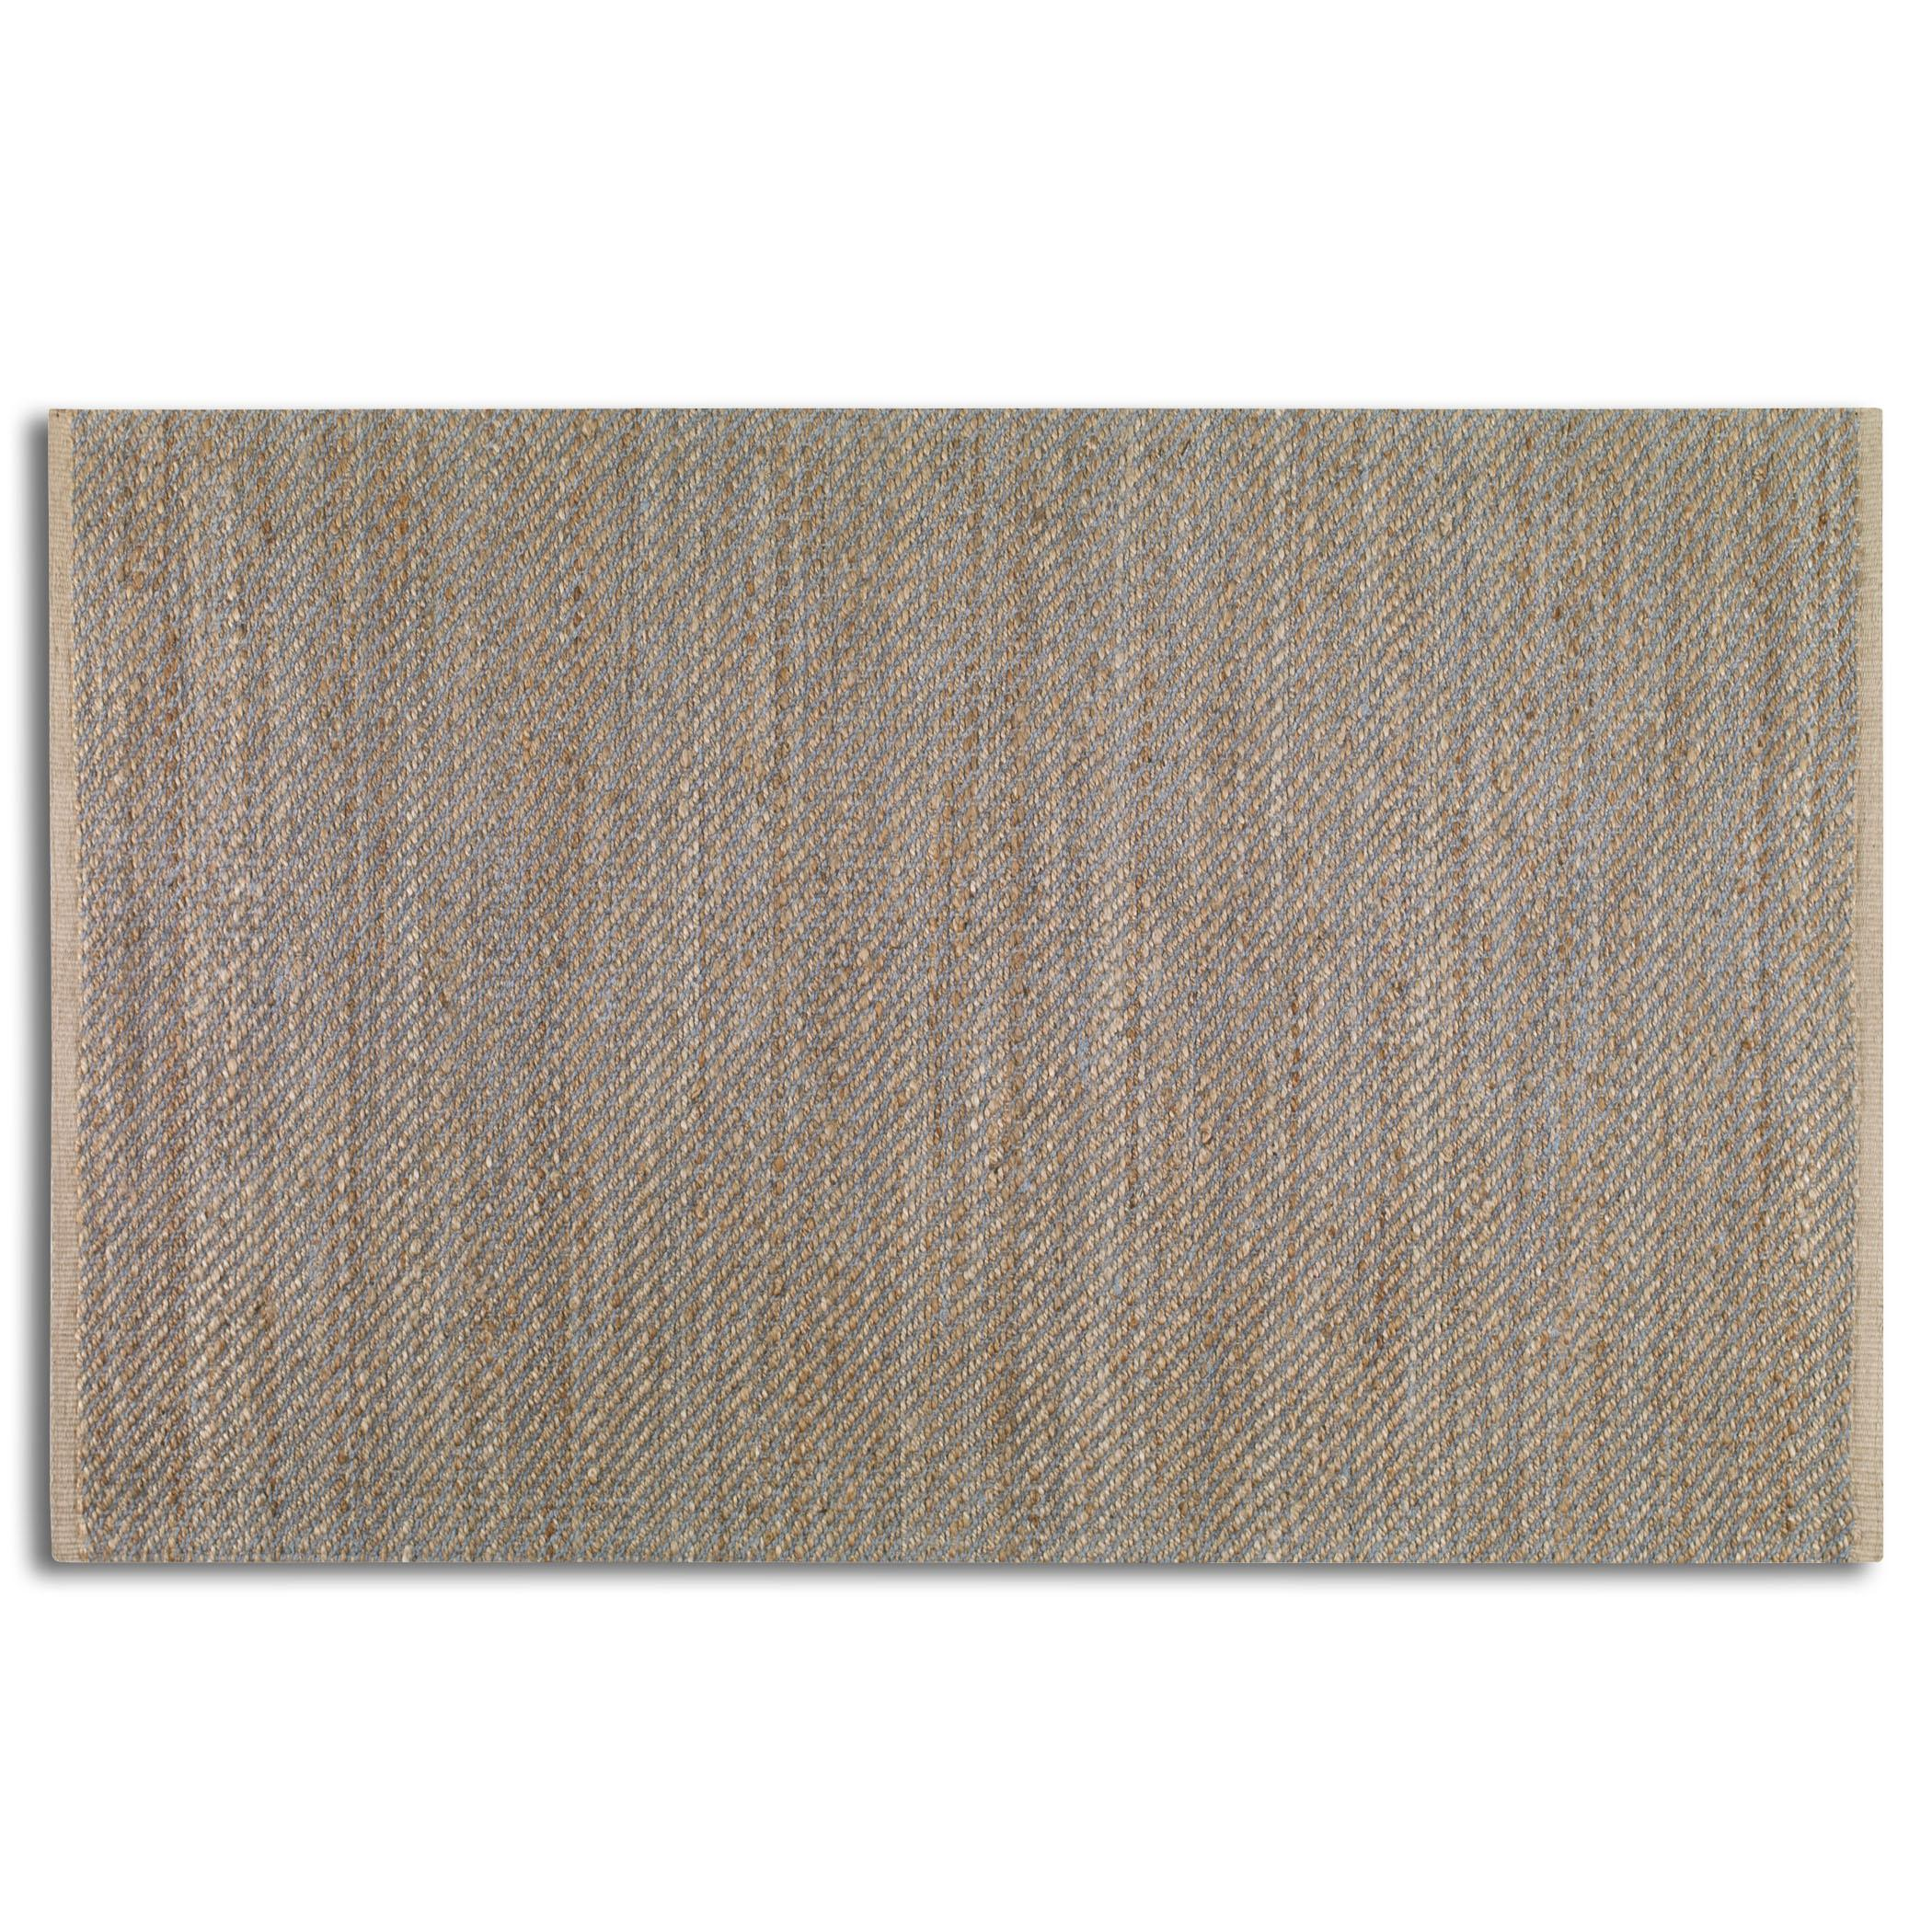 Uttermost Rugs Karima 5 X 8 Rug - Blue - Item Number: 71050-5